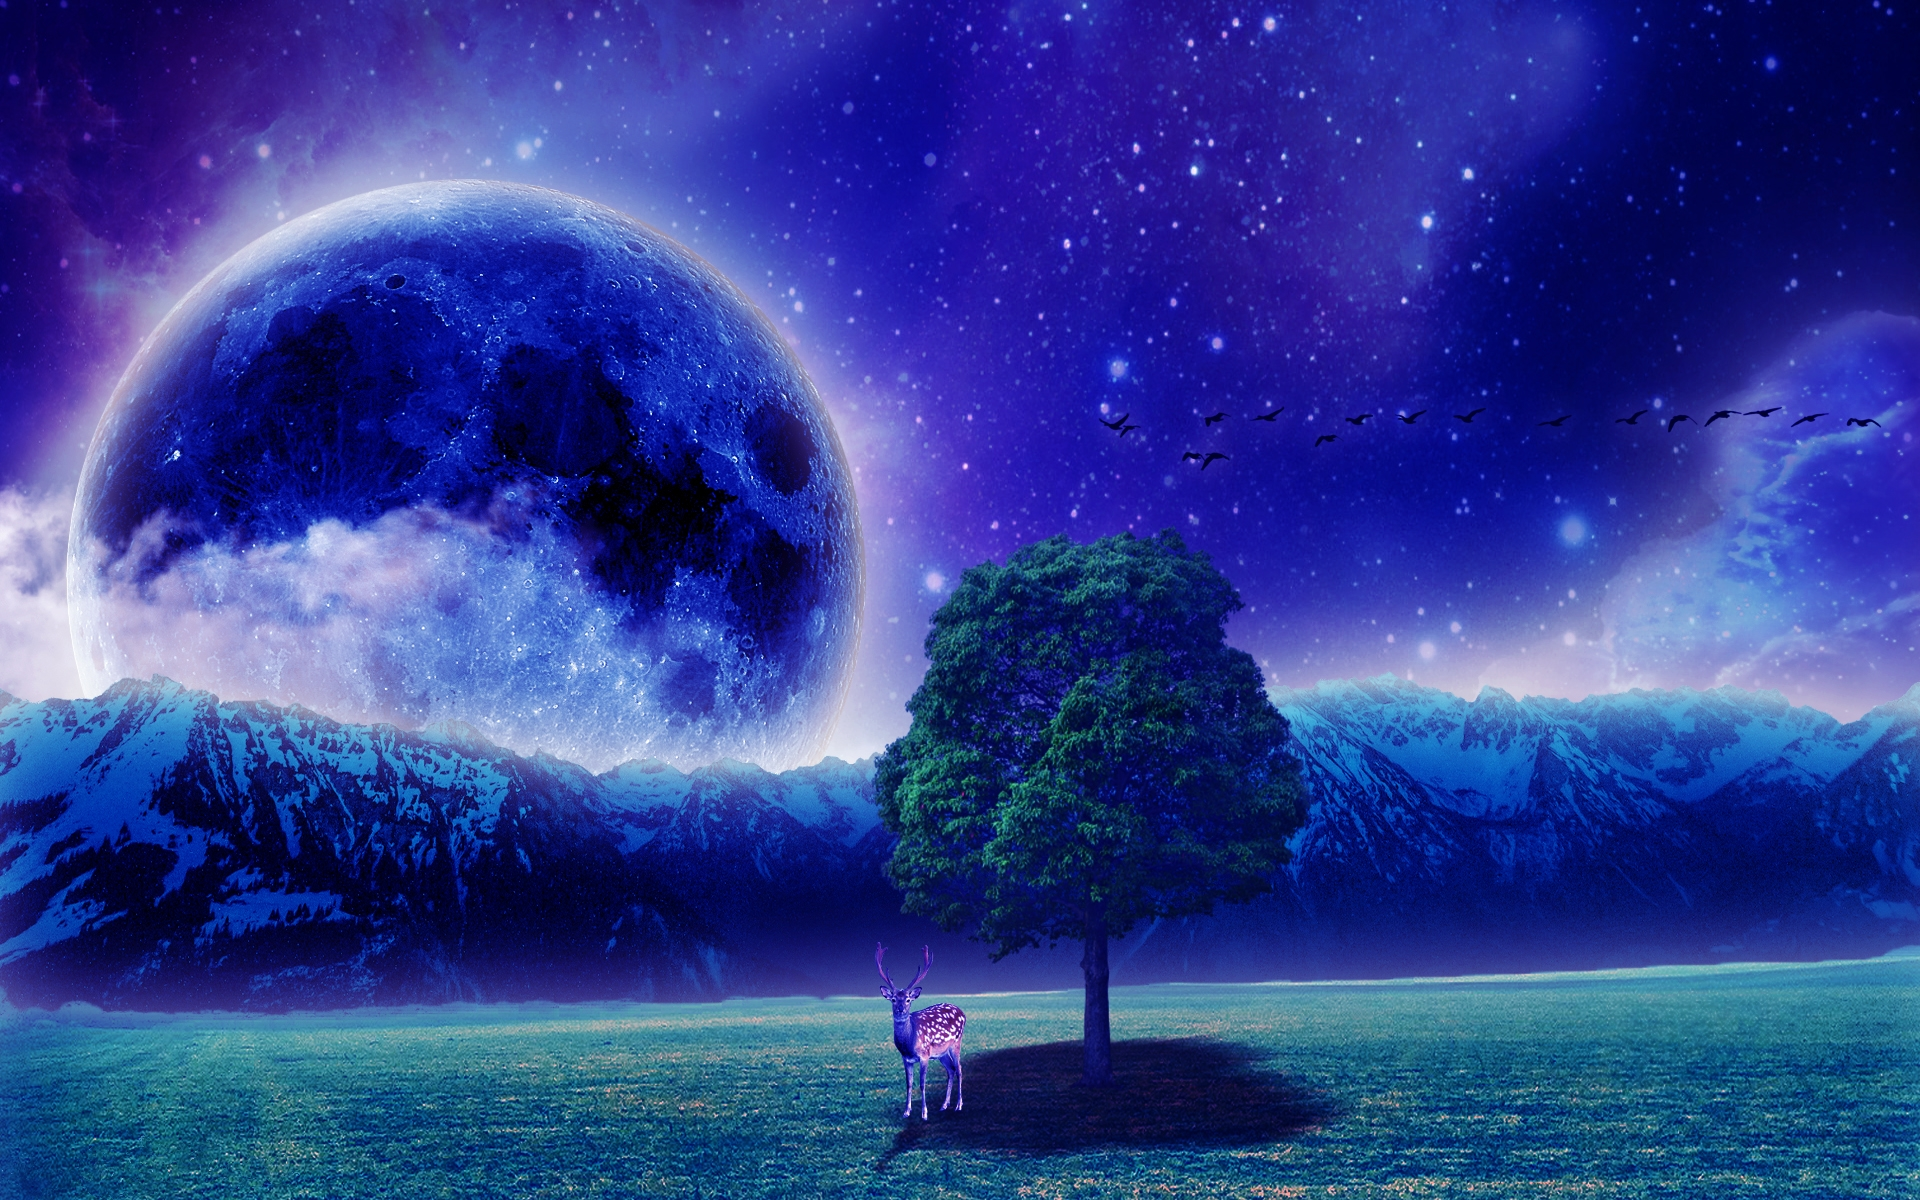 Fantasy wallpapers pictures images - Fantasy desktop pictures ...